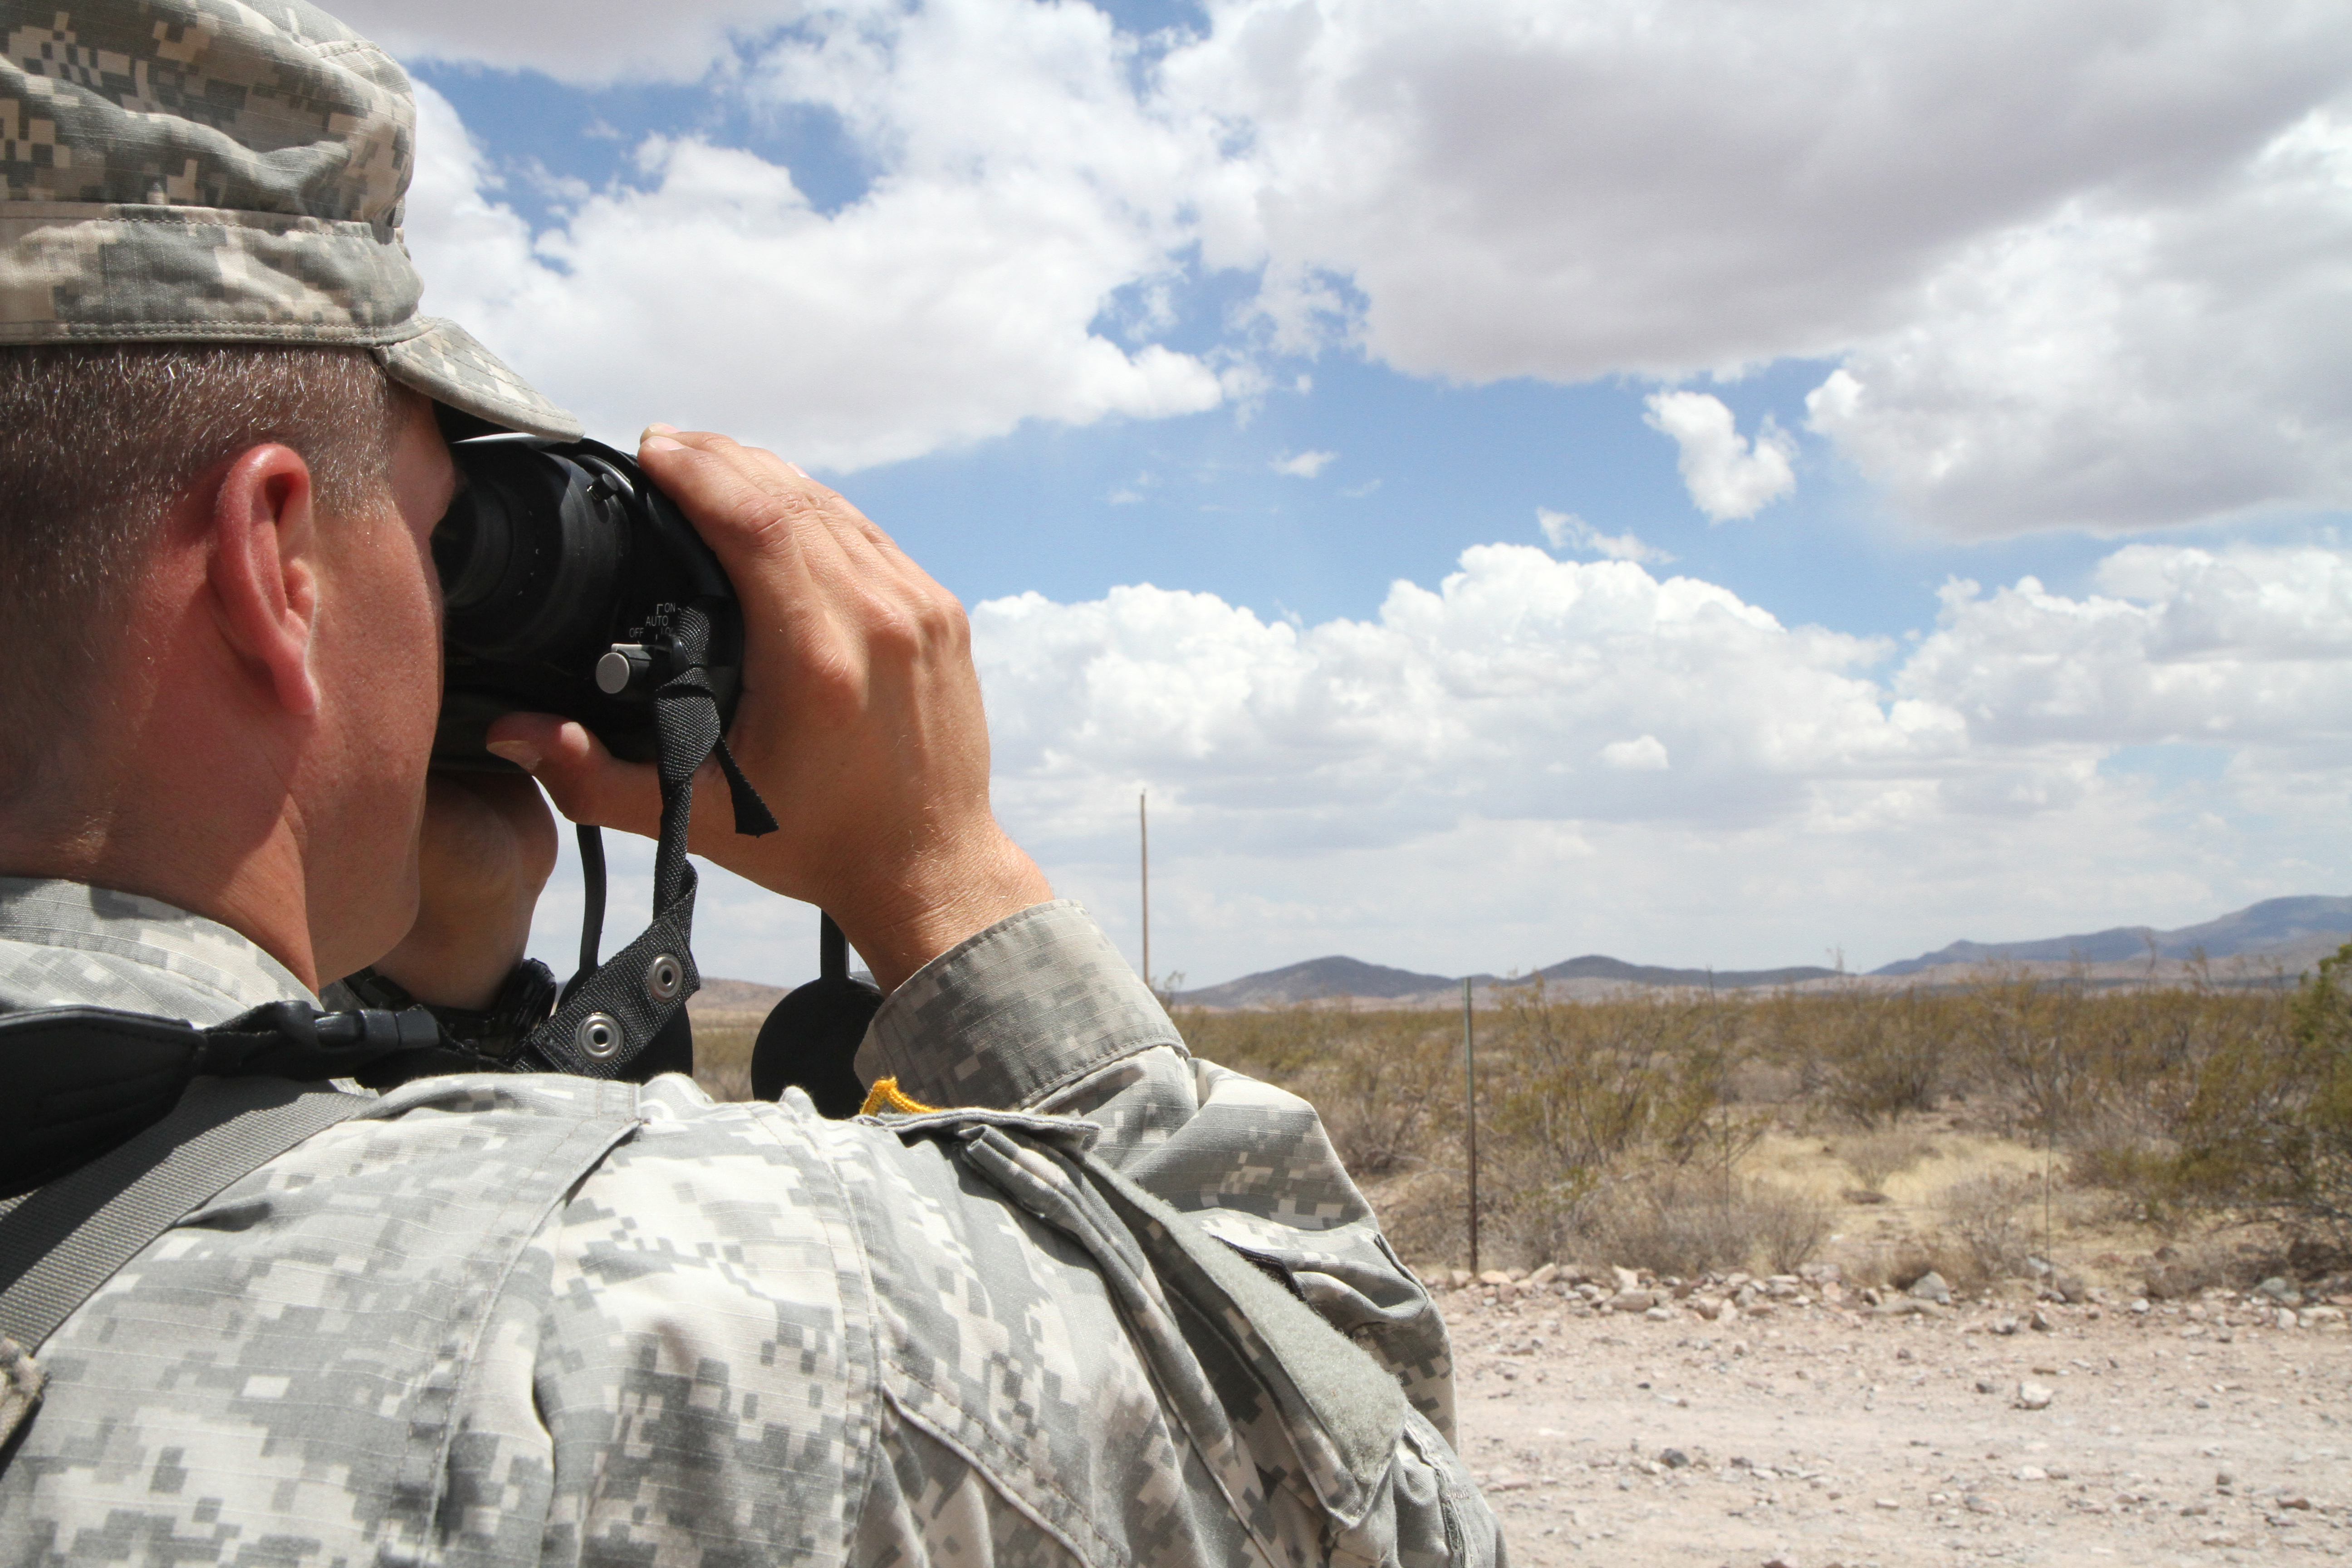 A District of Columbia National Guardsman monitors the U.S. border near Mexico in June 2014. On Thursday, President Donald Trump again suggested using U.S. servicemembers along the southern border to deal with immigration concerns. (Spc. Jennifer Amo/Army)